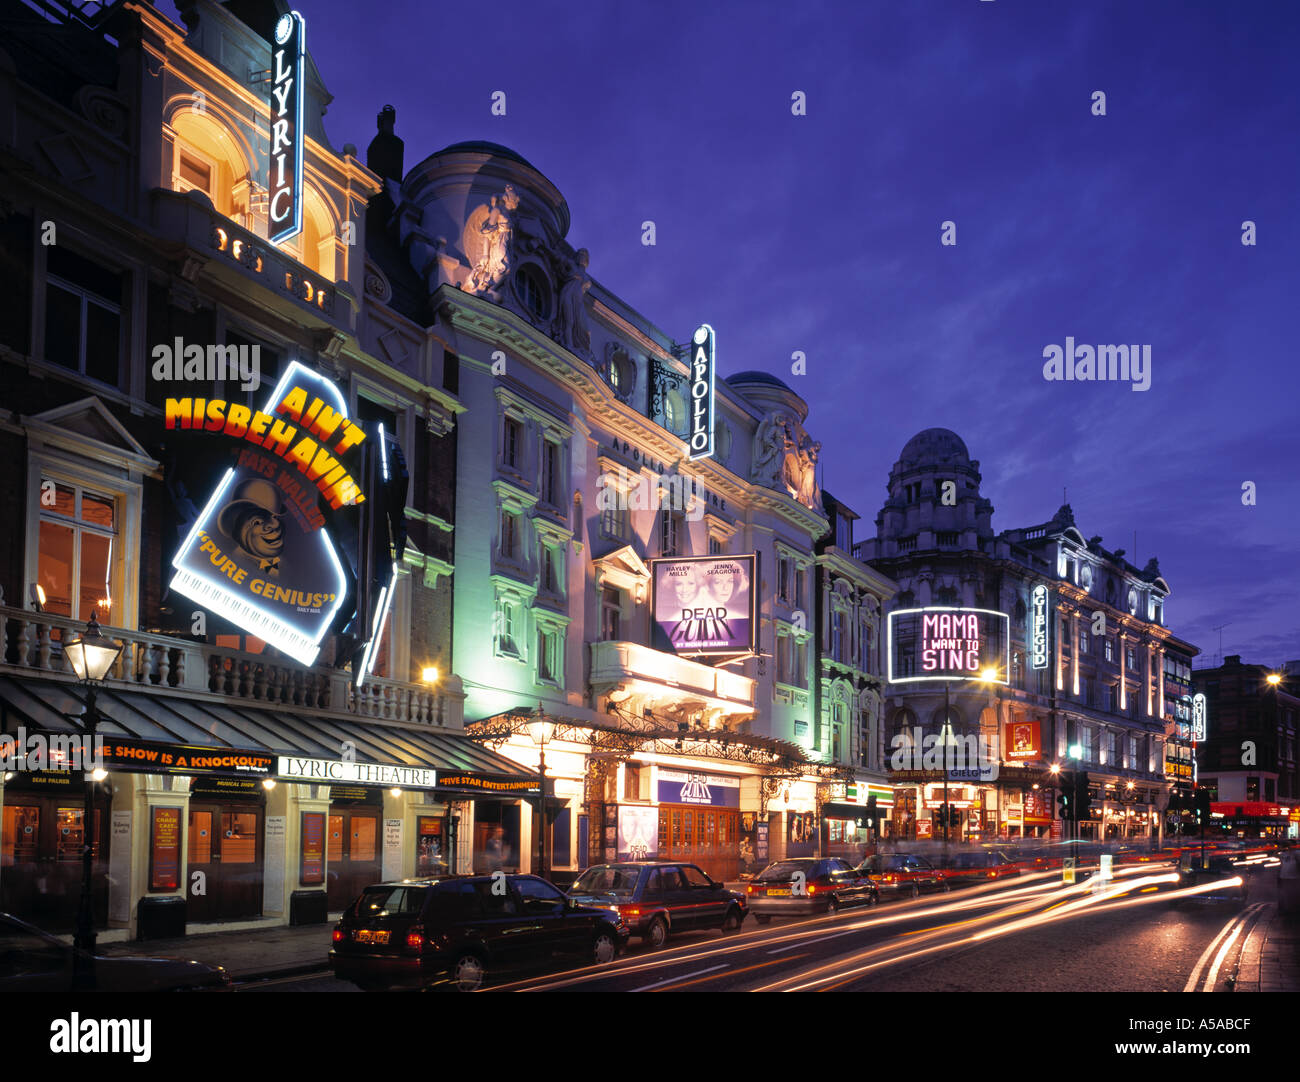 Theatreland, Shaftesbury Avenue, London, England - Stock Image